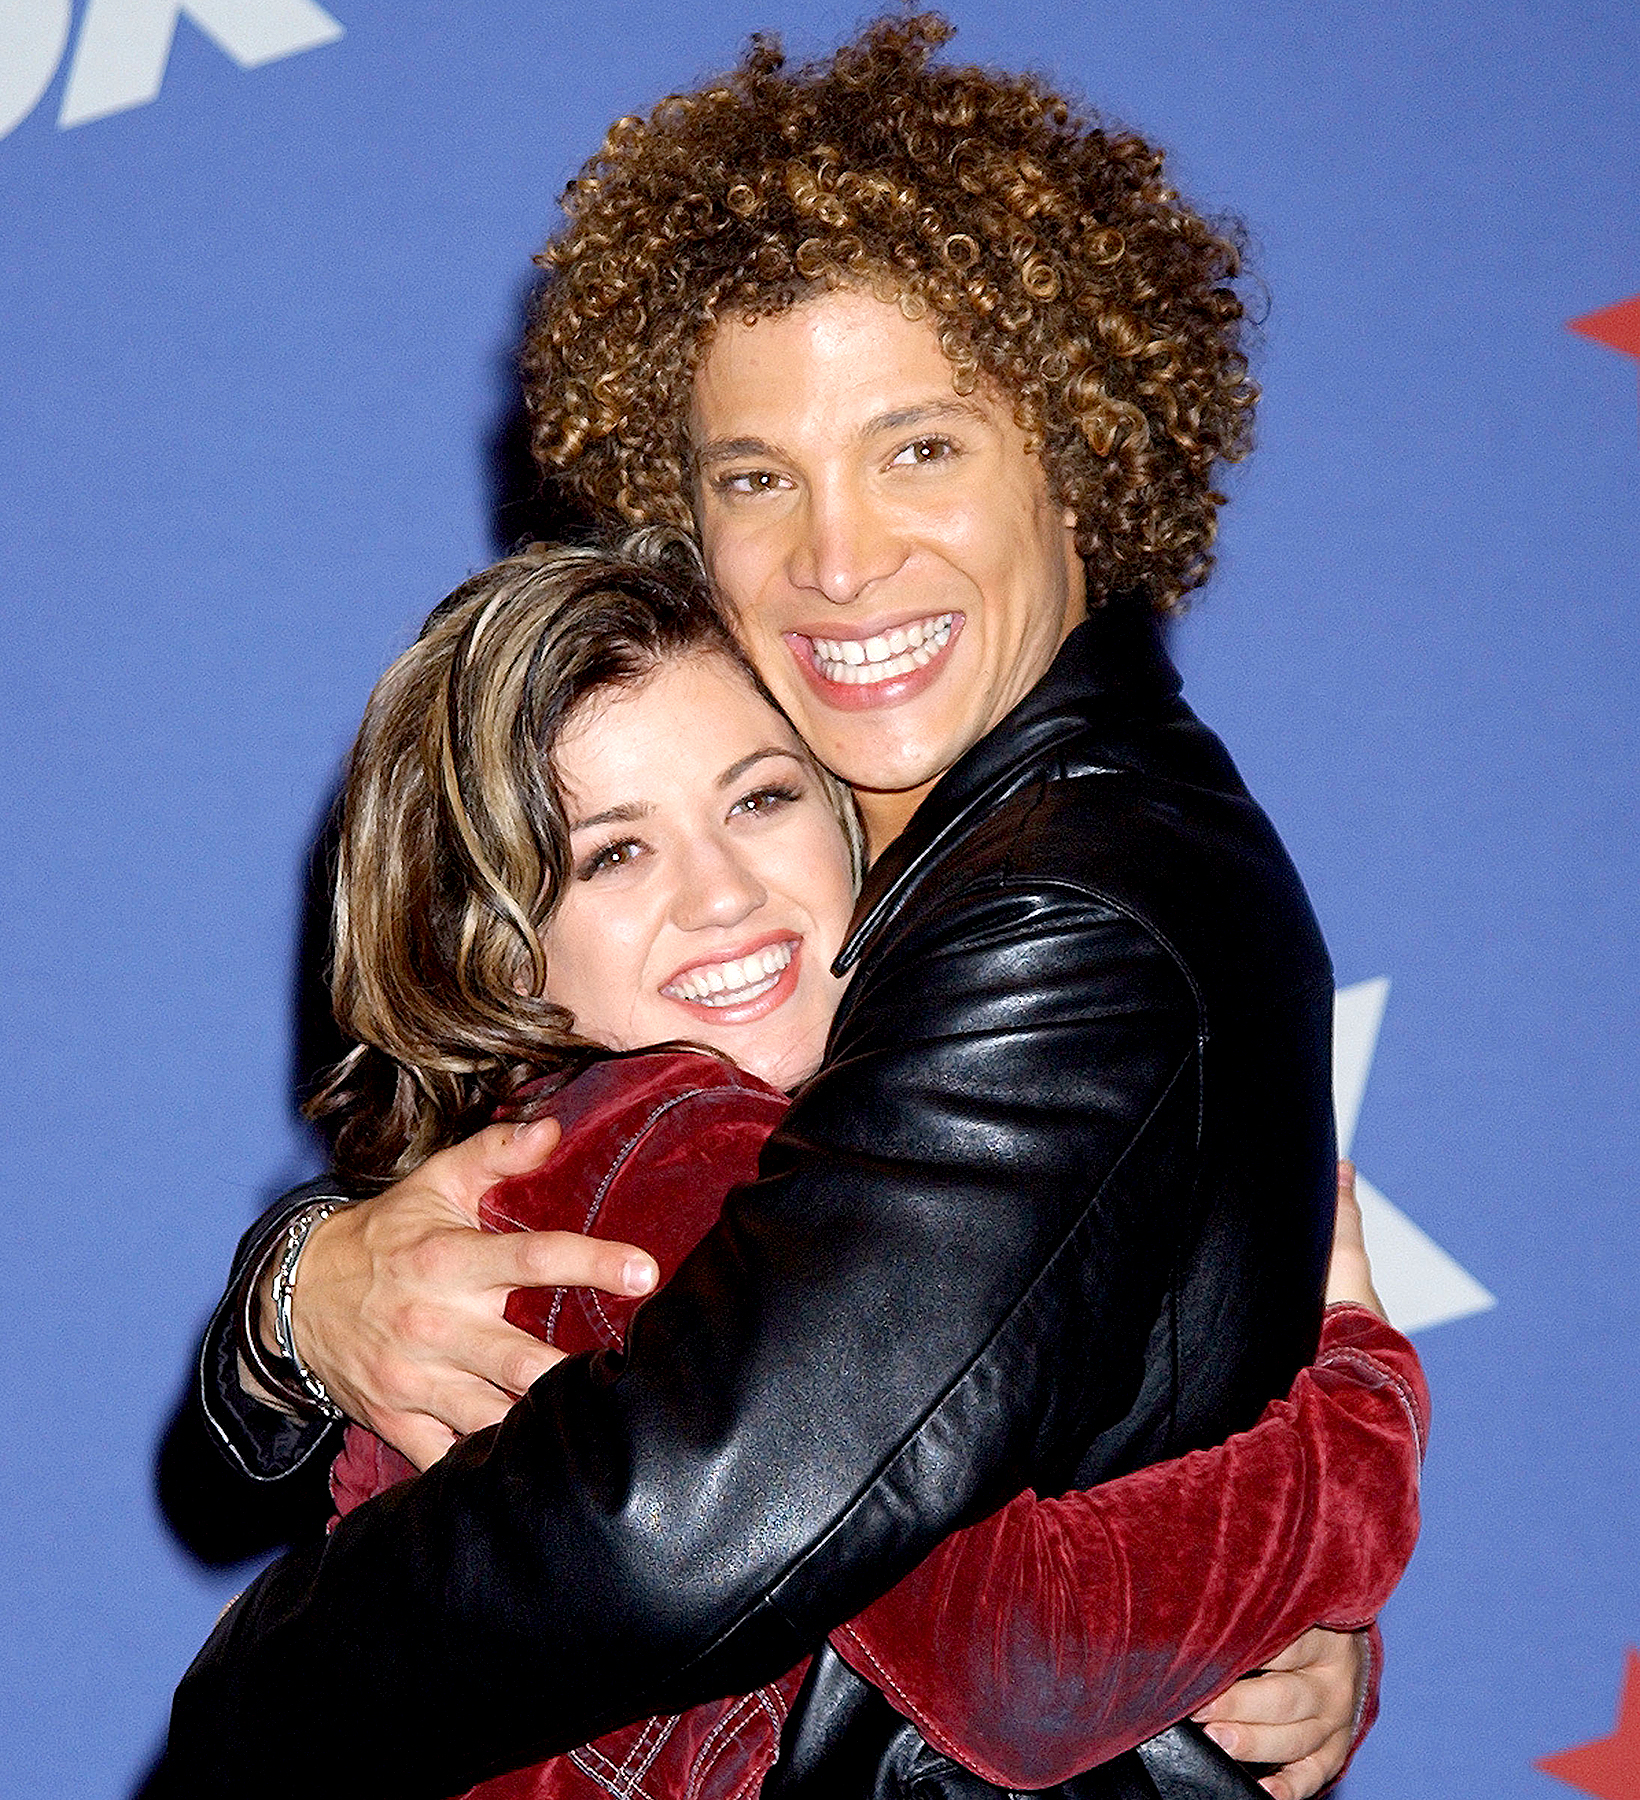 Kelly Clarkson and Justin Guarini during